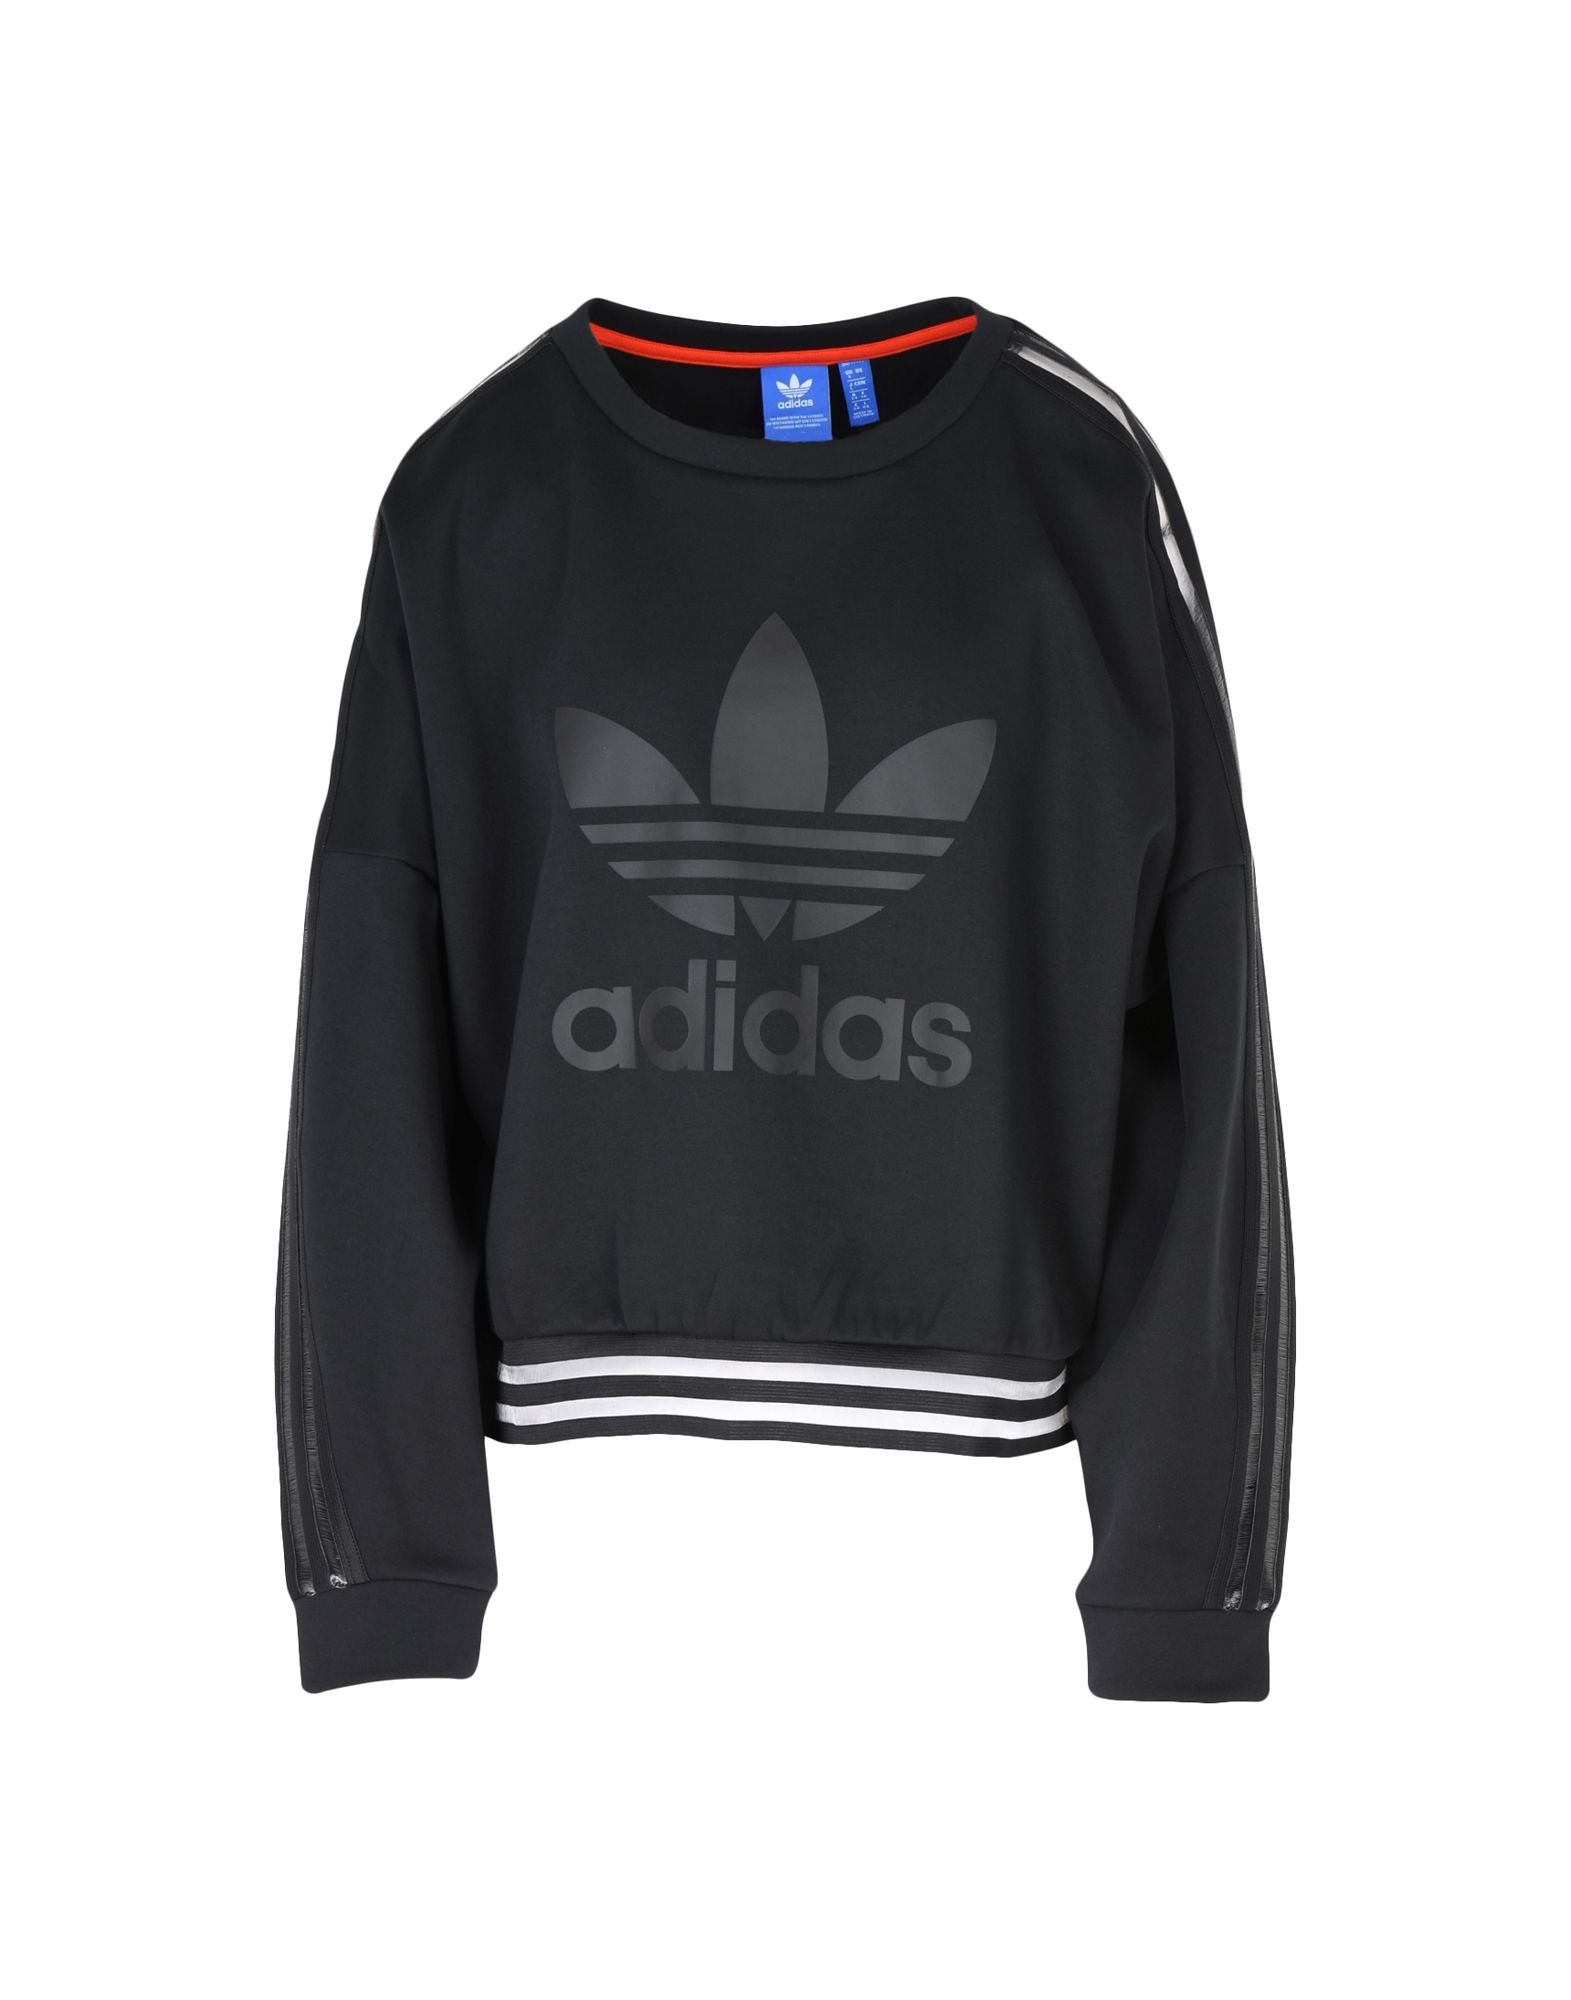 adidas jumper adidas originals women jumpers and sweatshirts black,adidas r1 winter  wool,high quality guarantee YNUVNVB